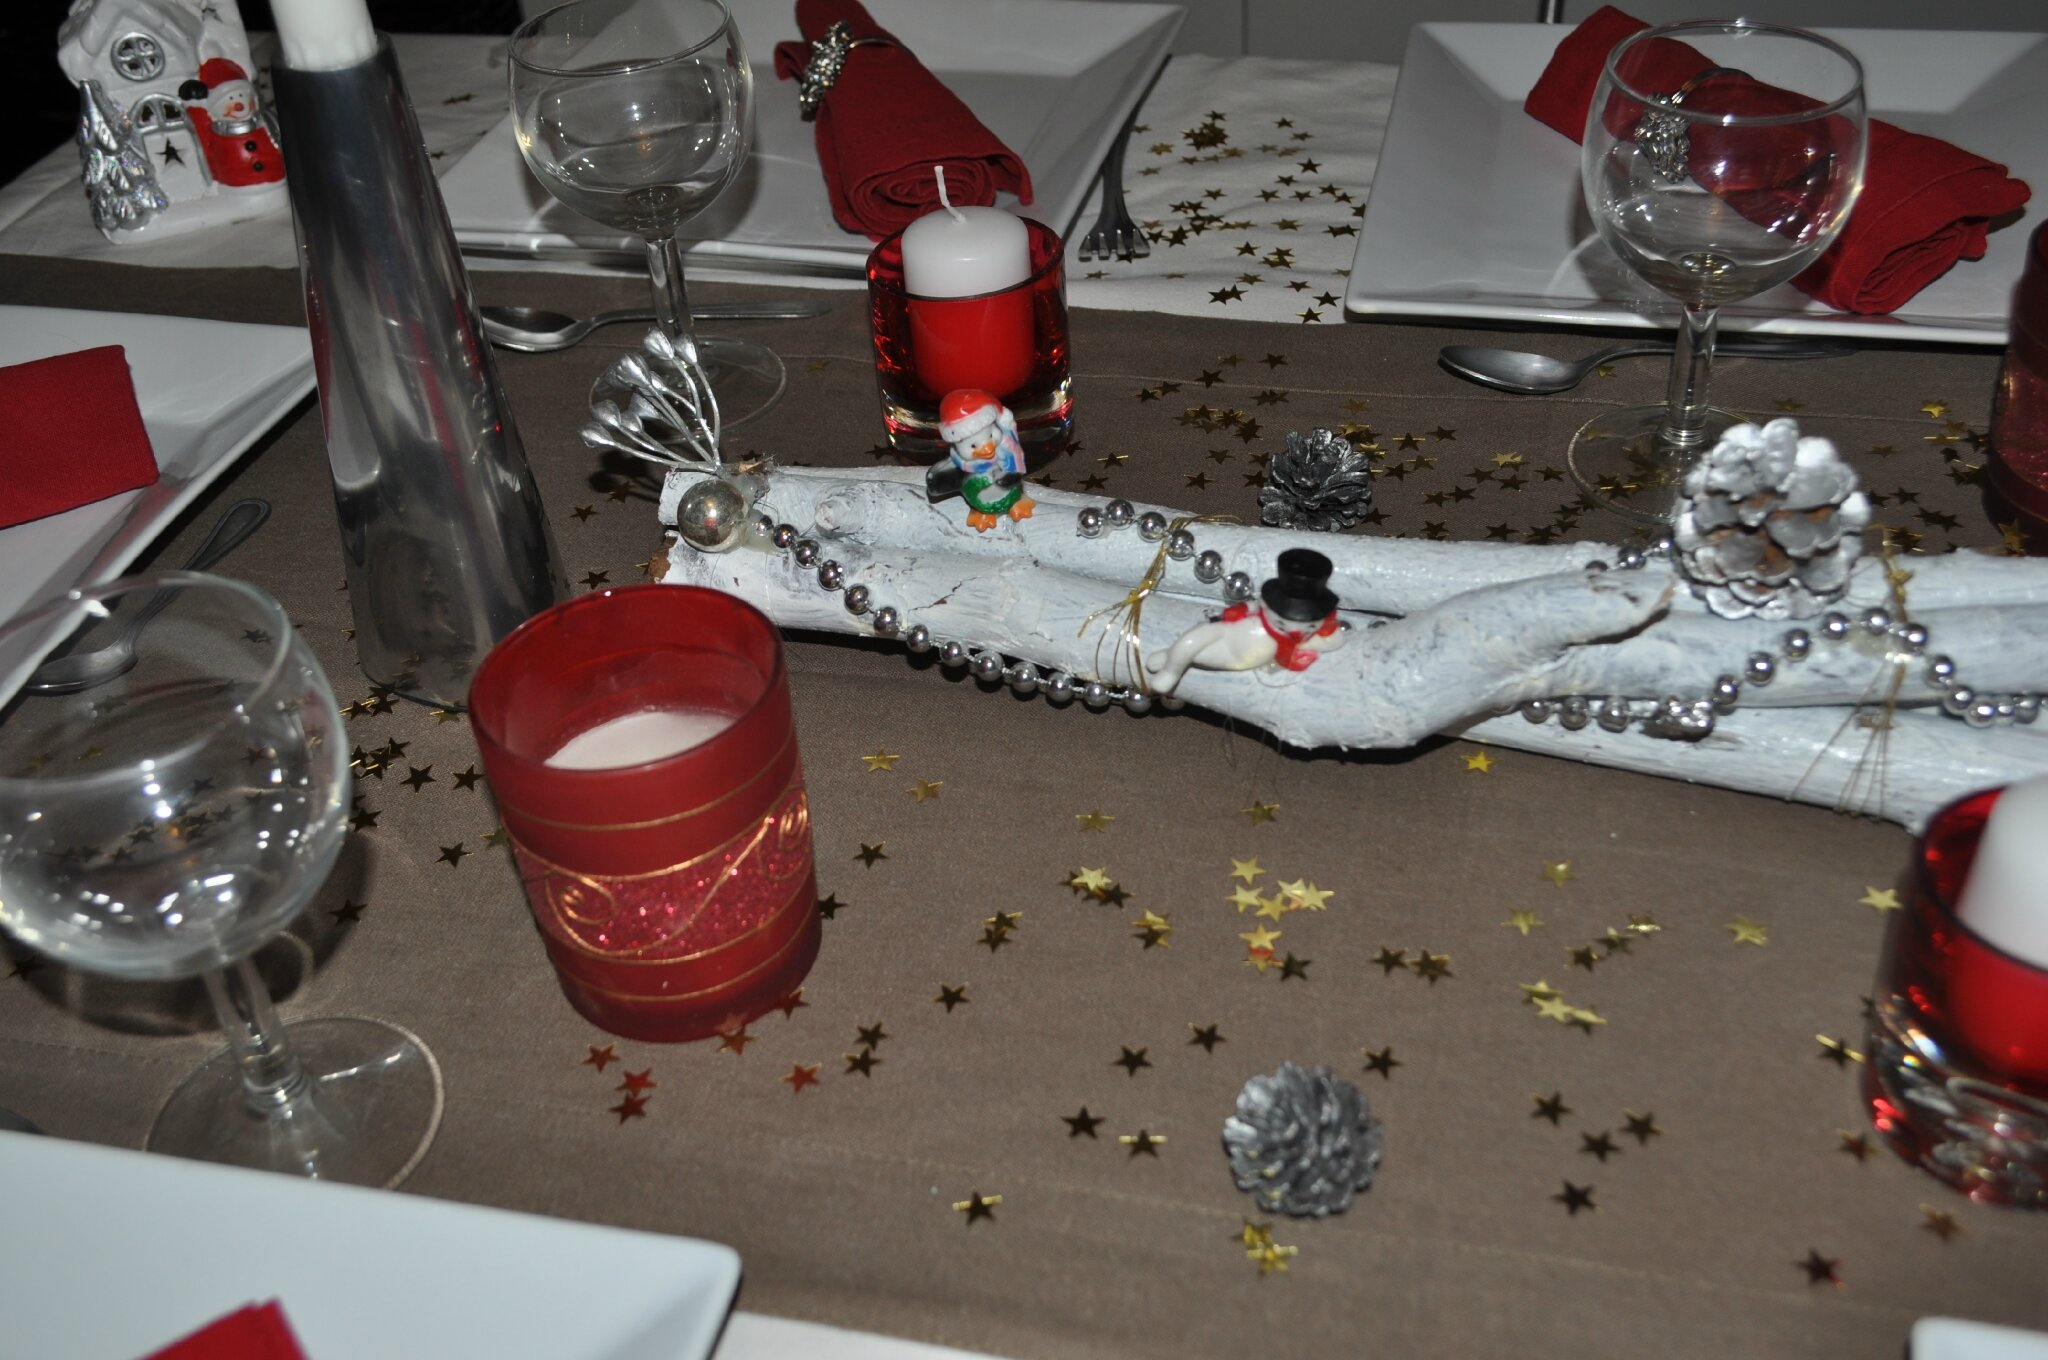 Decoration de table nouvel an 2013 les petits delices de chris - Deco reveillon nouvel an ...